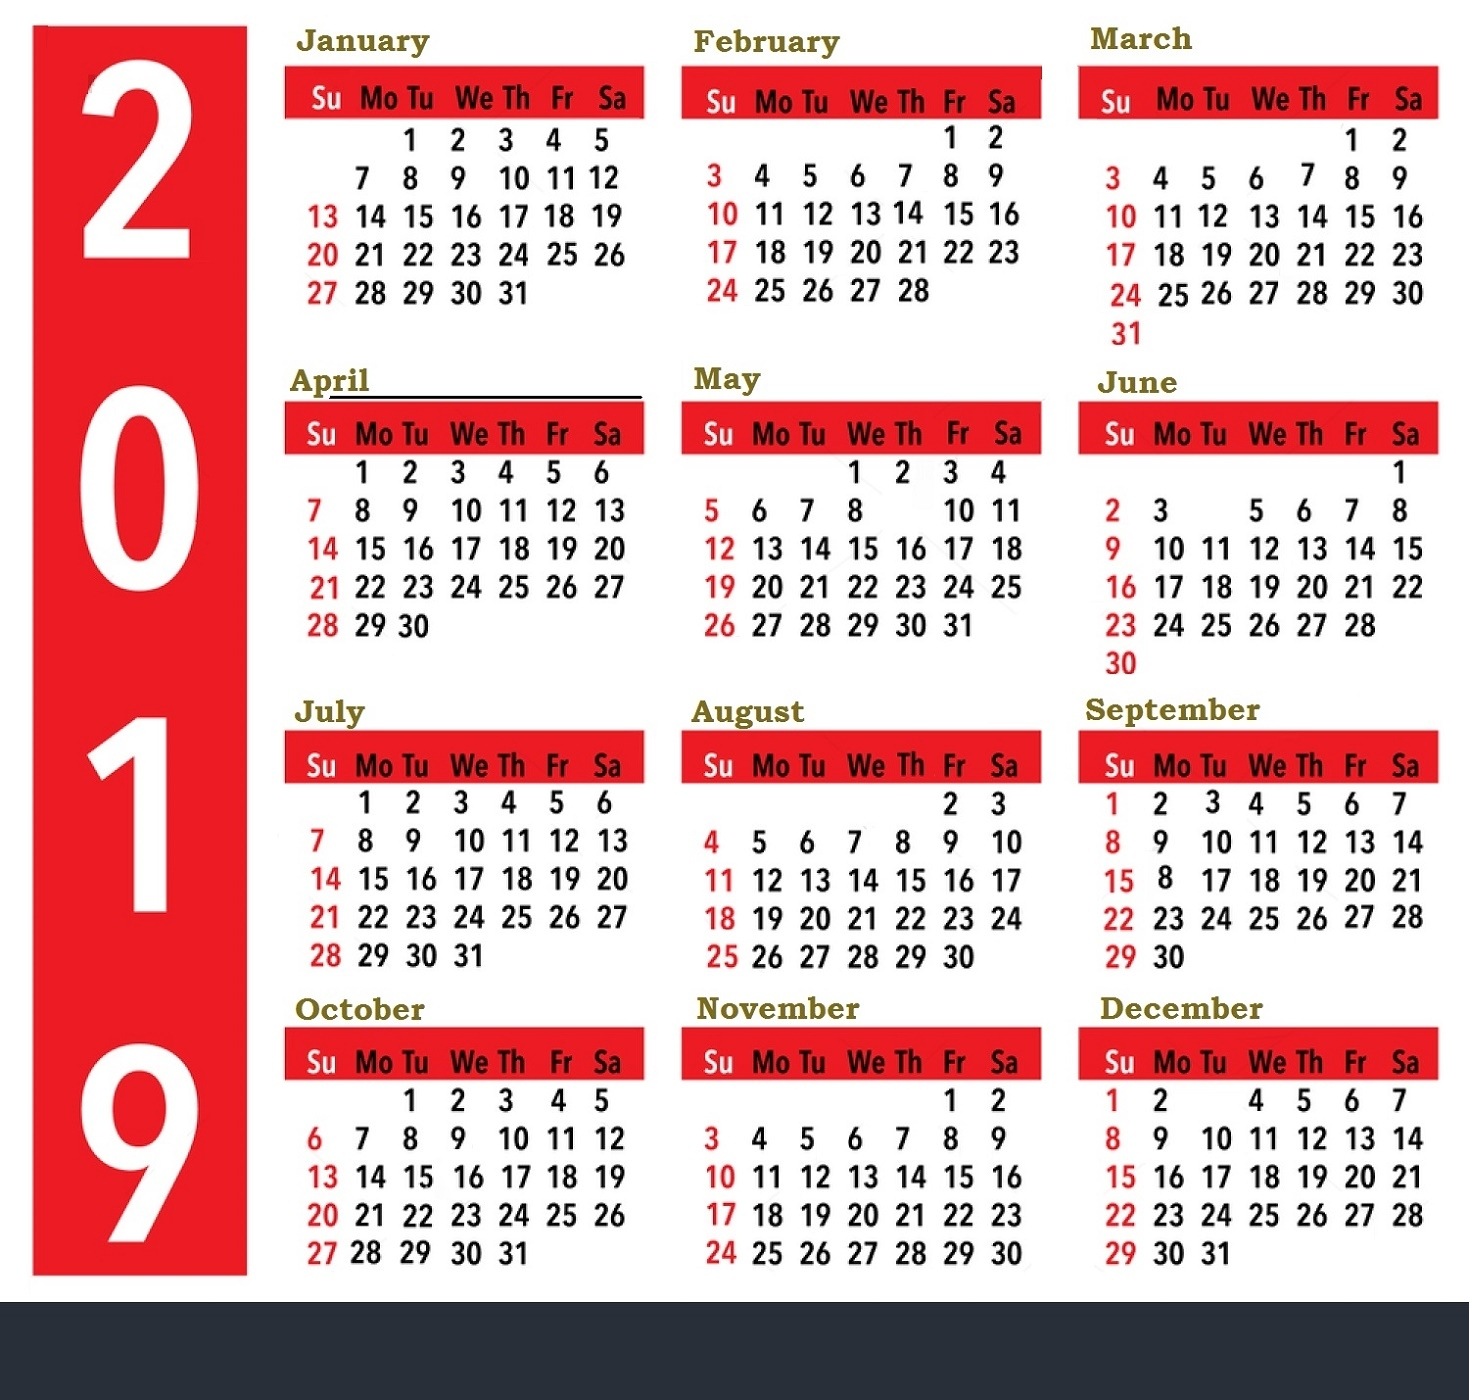 Printable Calendar For 2019, 2020, 2021, 2022 | Calendar Shelter for May Calendars For 2019 2020 2021 And 2022